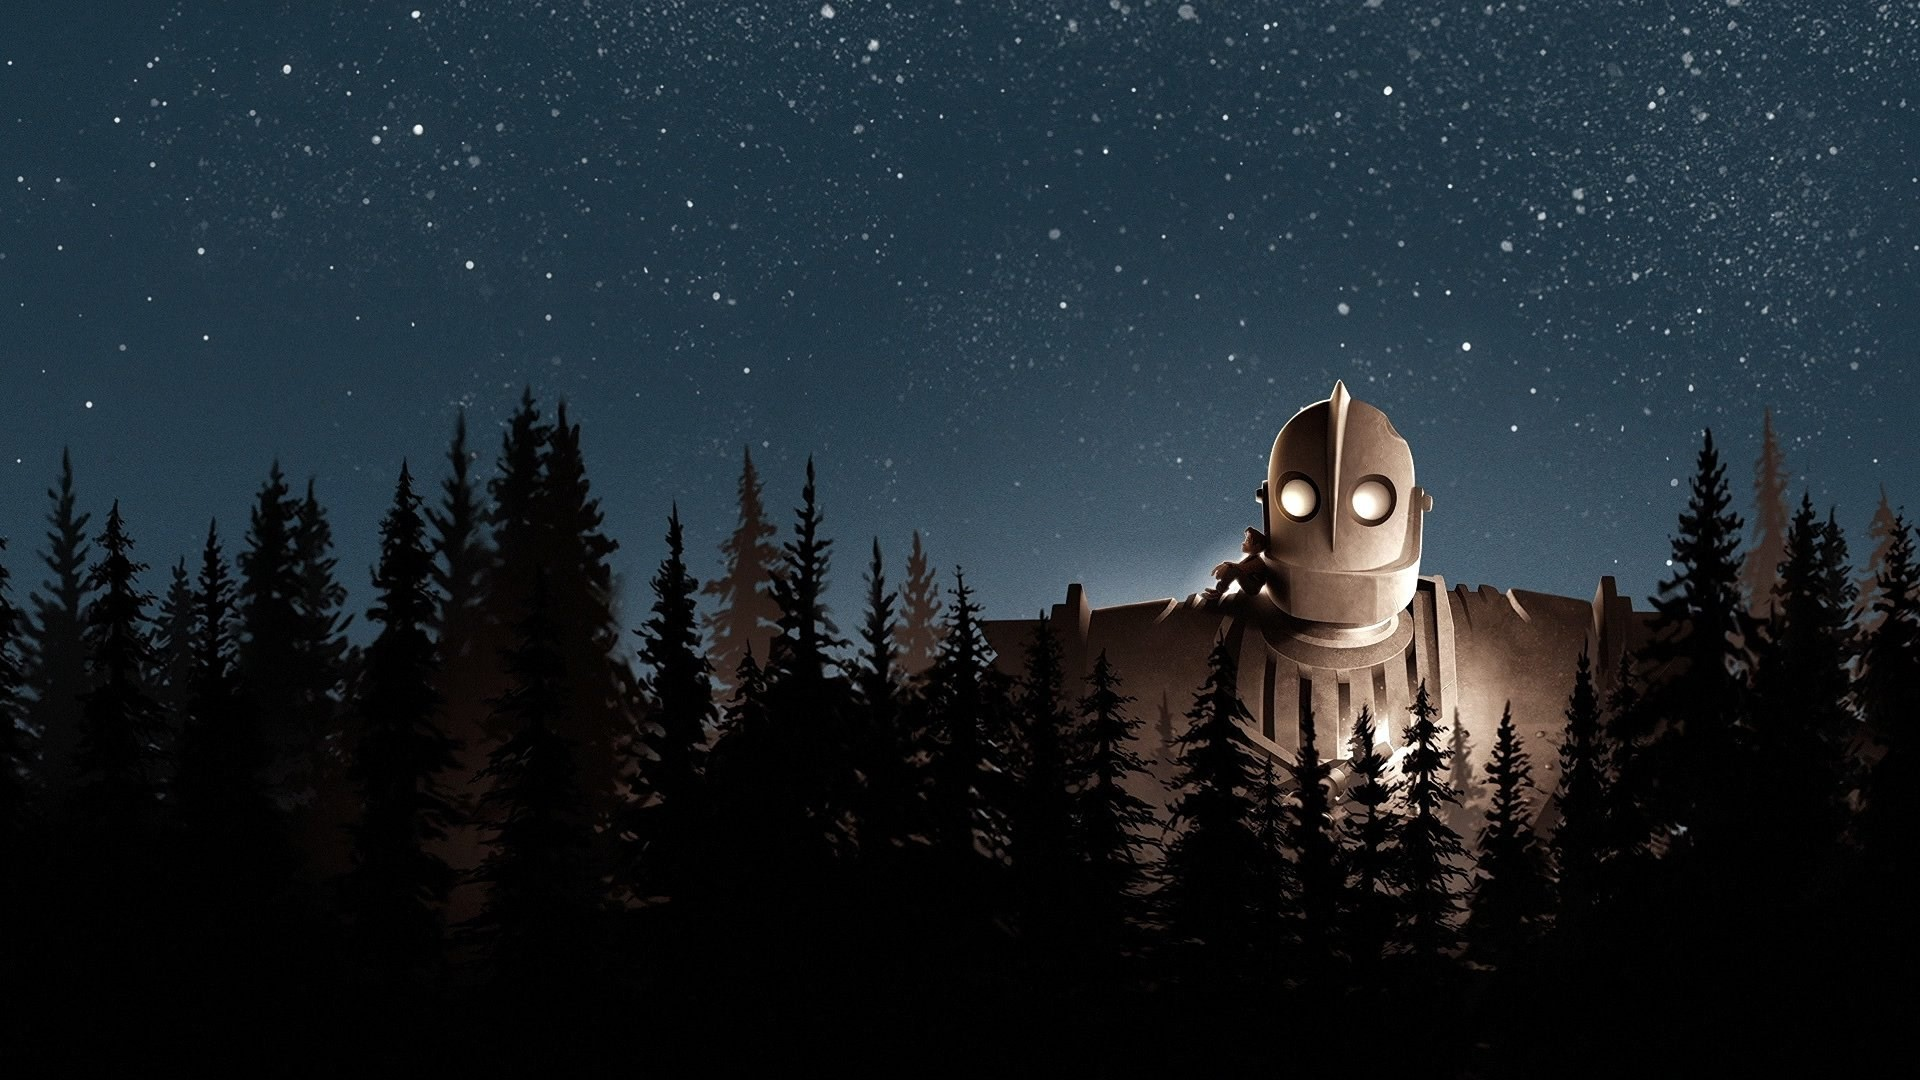 the iron giant background wallpaper free, Hazel Robertson 2017-03-19